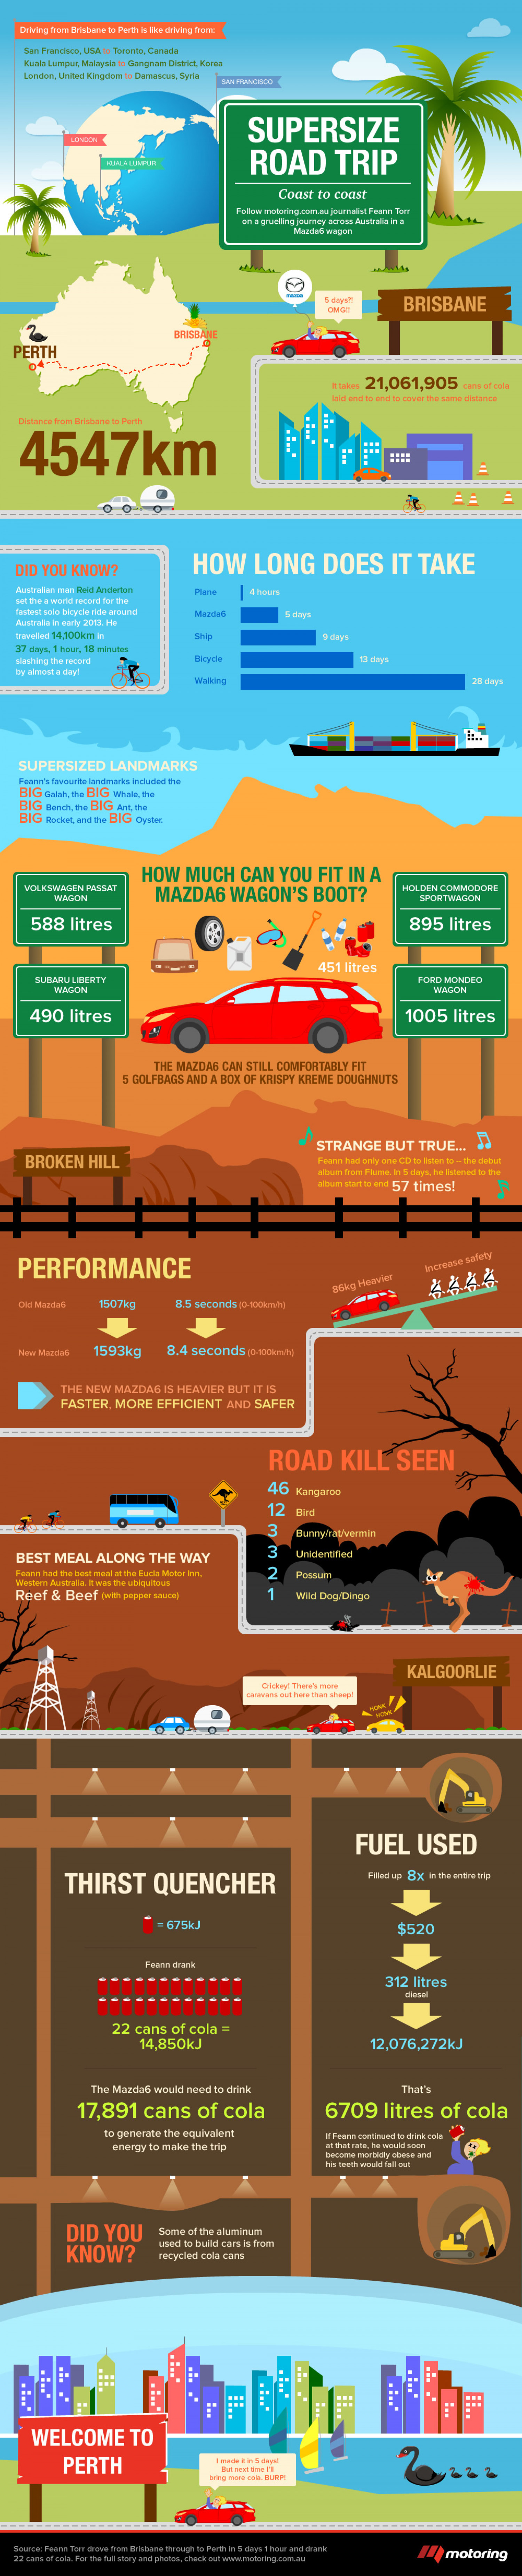 Supersize road trip from Brisbane to Perth Infographic